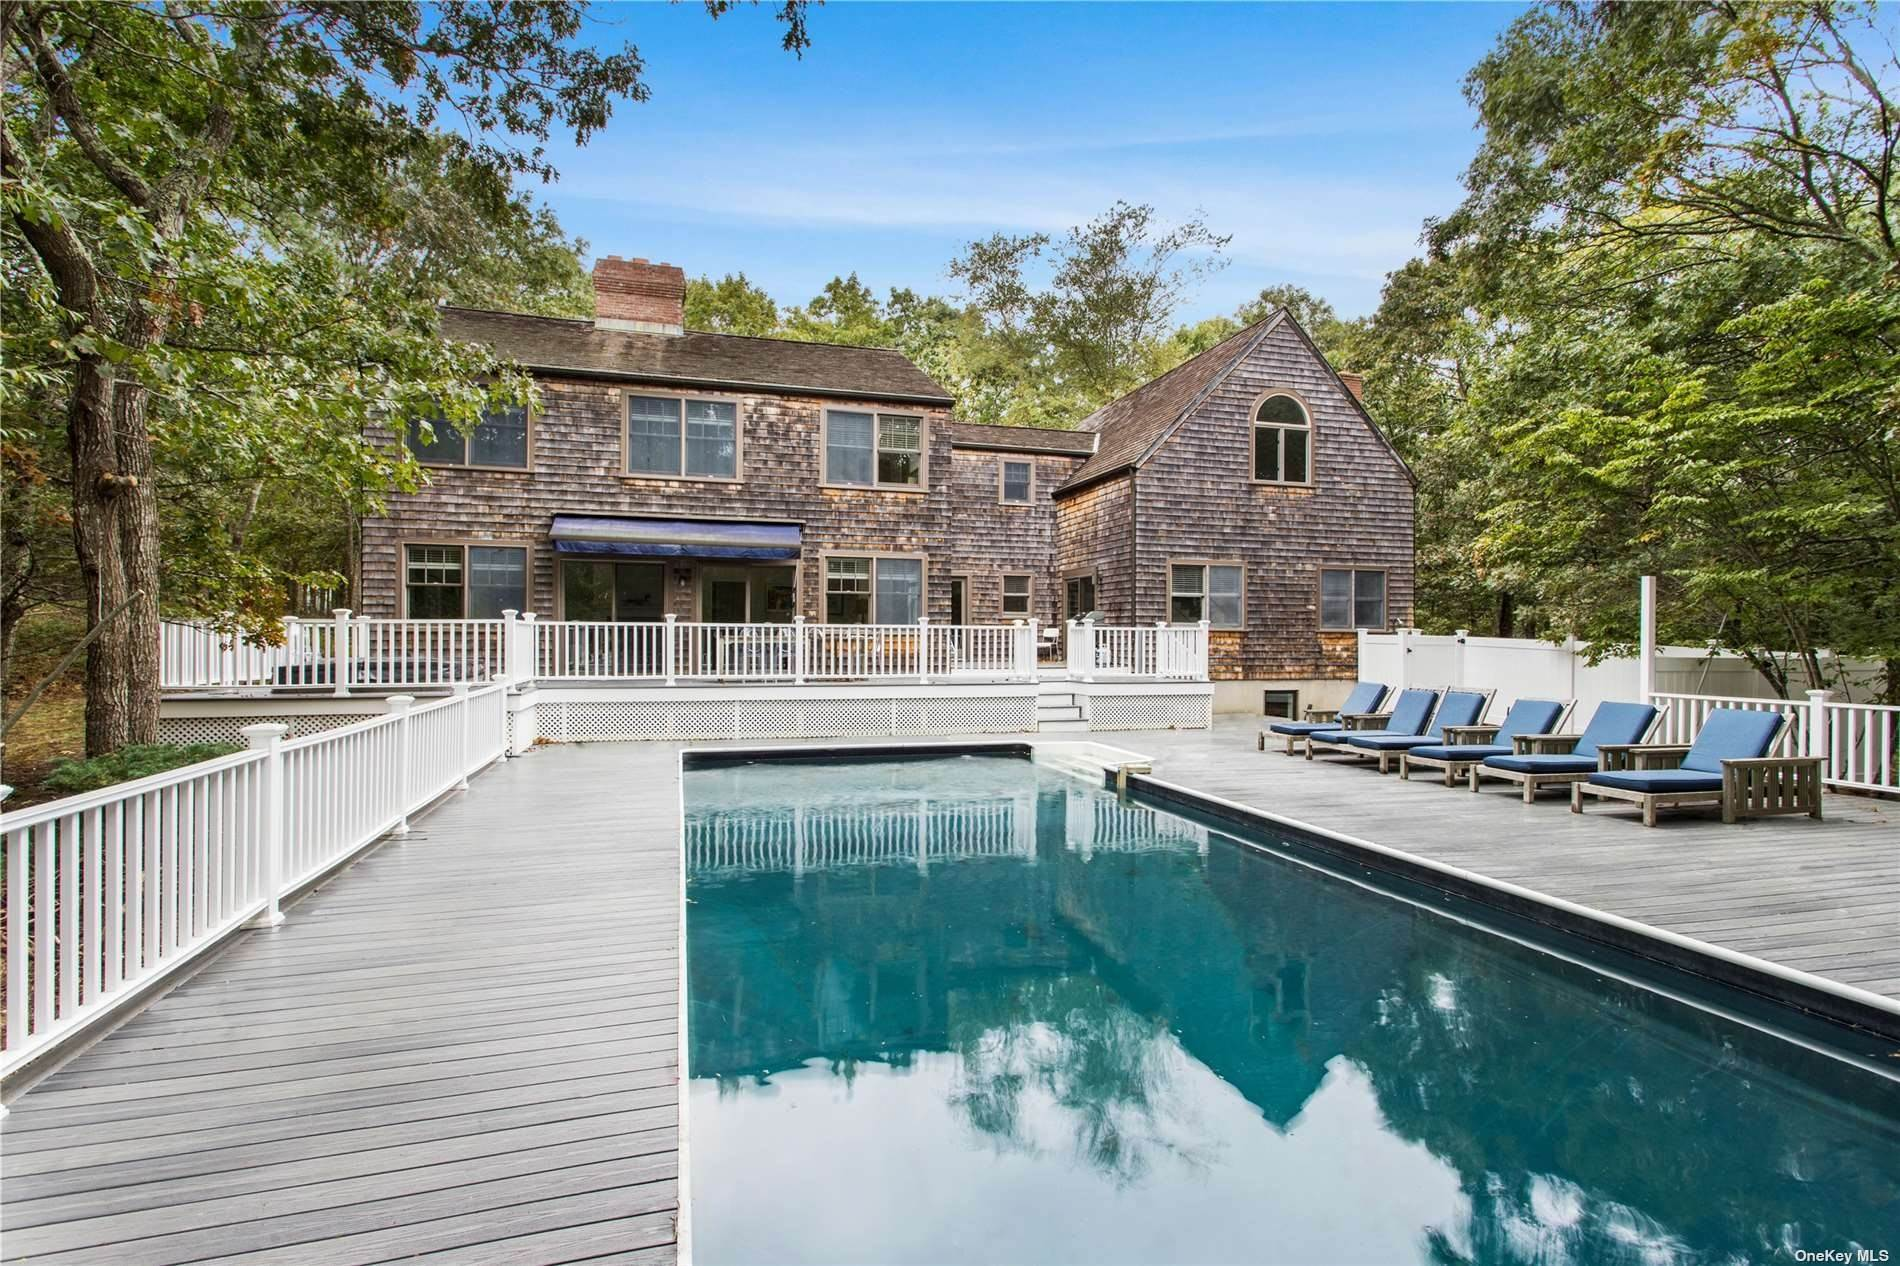 Residential for Sale at 75 S Breeze Drive Wainscott, New York 11975 United States